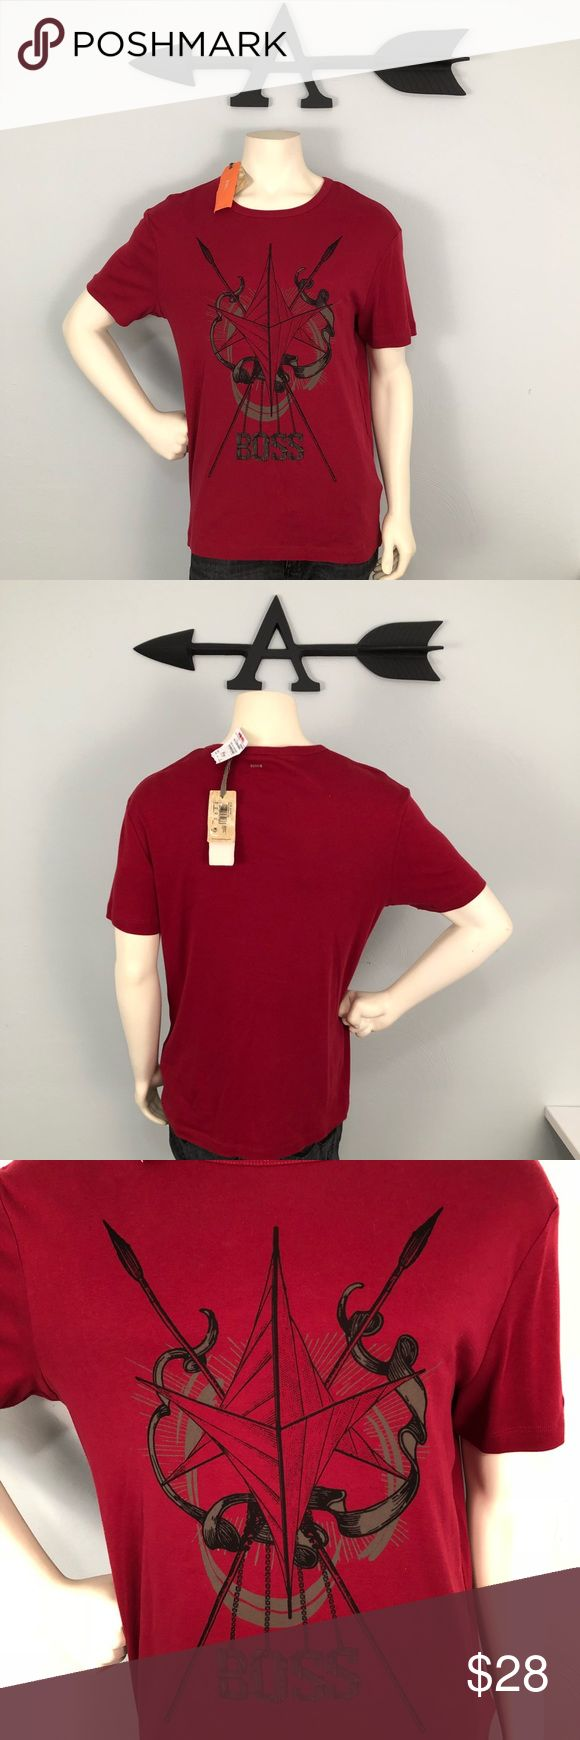 """Hugo Boss •NWT• Graphic Tee Shirt size XL This shirt is brand new and is in perfect condition. Great graphics on the front with a beautiful deep red background. Shirt fits a bit smaller than some XL, athletic or tailored fit. Chest measures 21"""" and the height is 27"""". Please feel free to ask further questions and all offers will be considered.  ••Posh Ambassador•• ••Bundle Like=15% DISCOUNT & Less Shipping Hugo Boss Shirts Tees - Short Sleeve"""